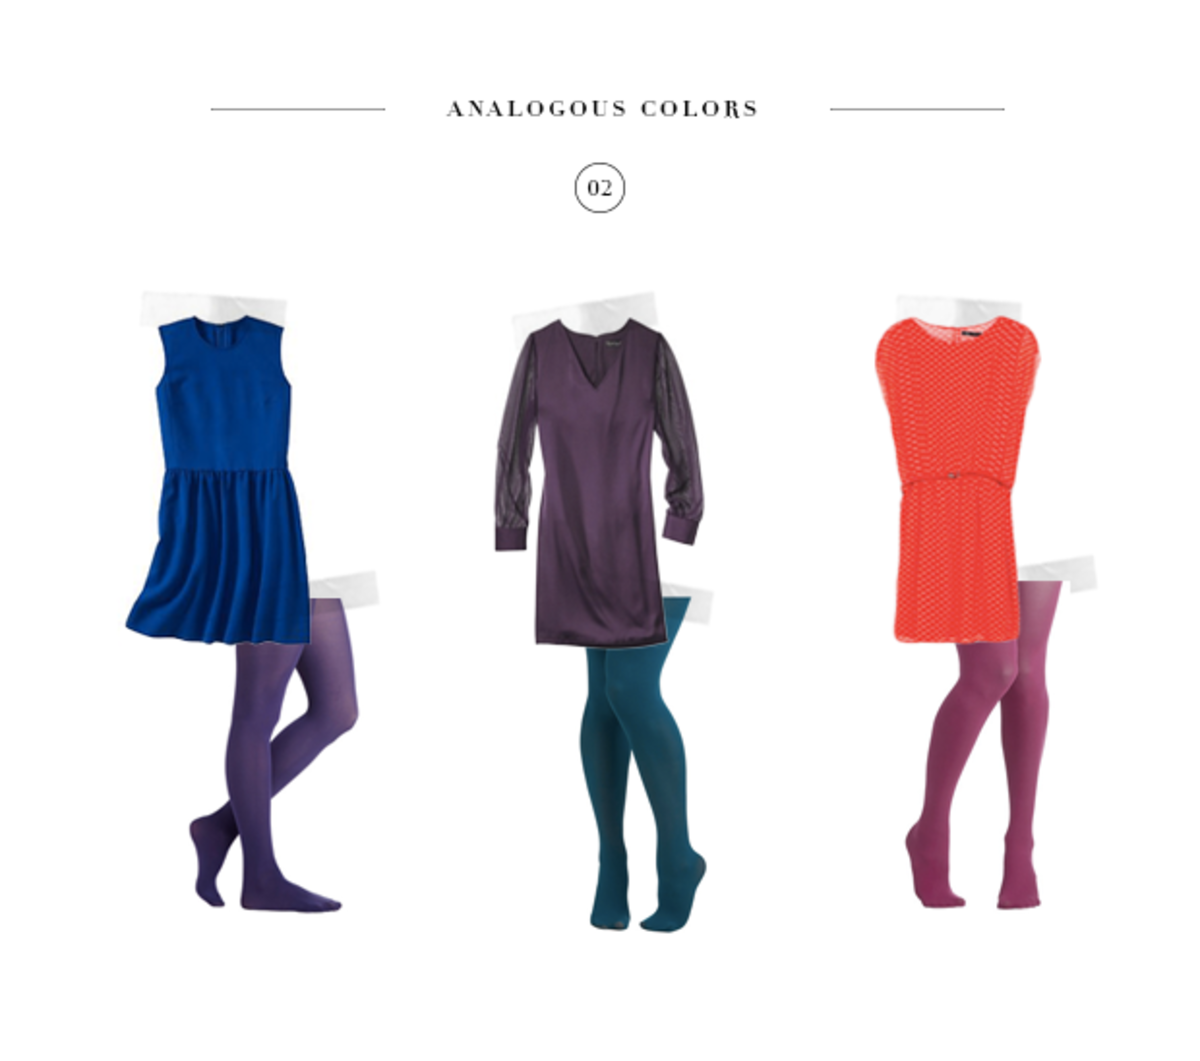 colorful-tights-analogous